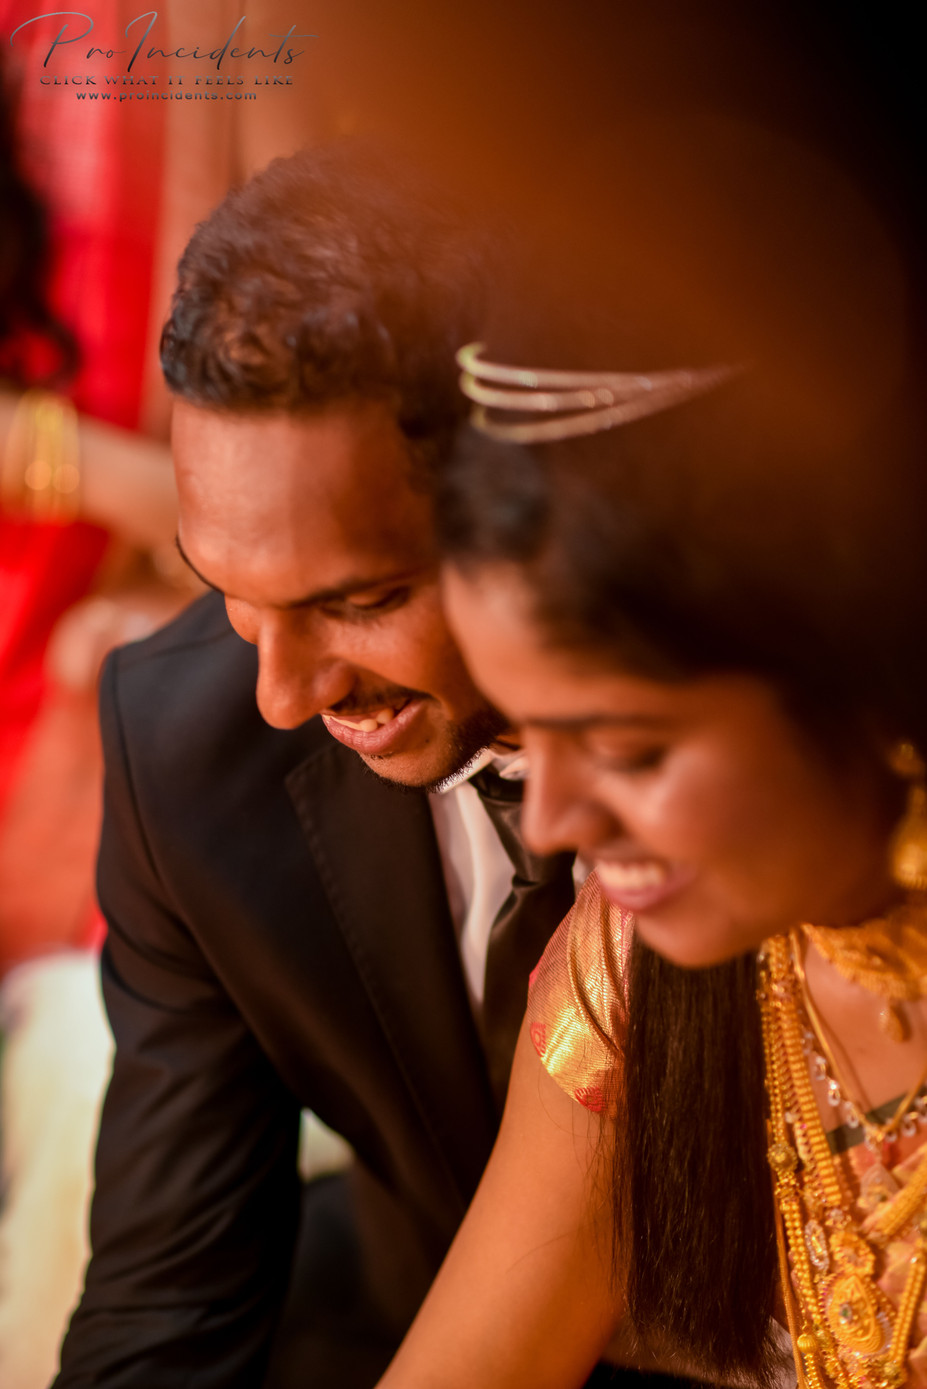 Best Candid Catholic christian wedding photographer Nagercoil Tamilnadu